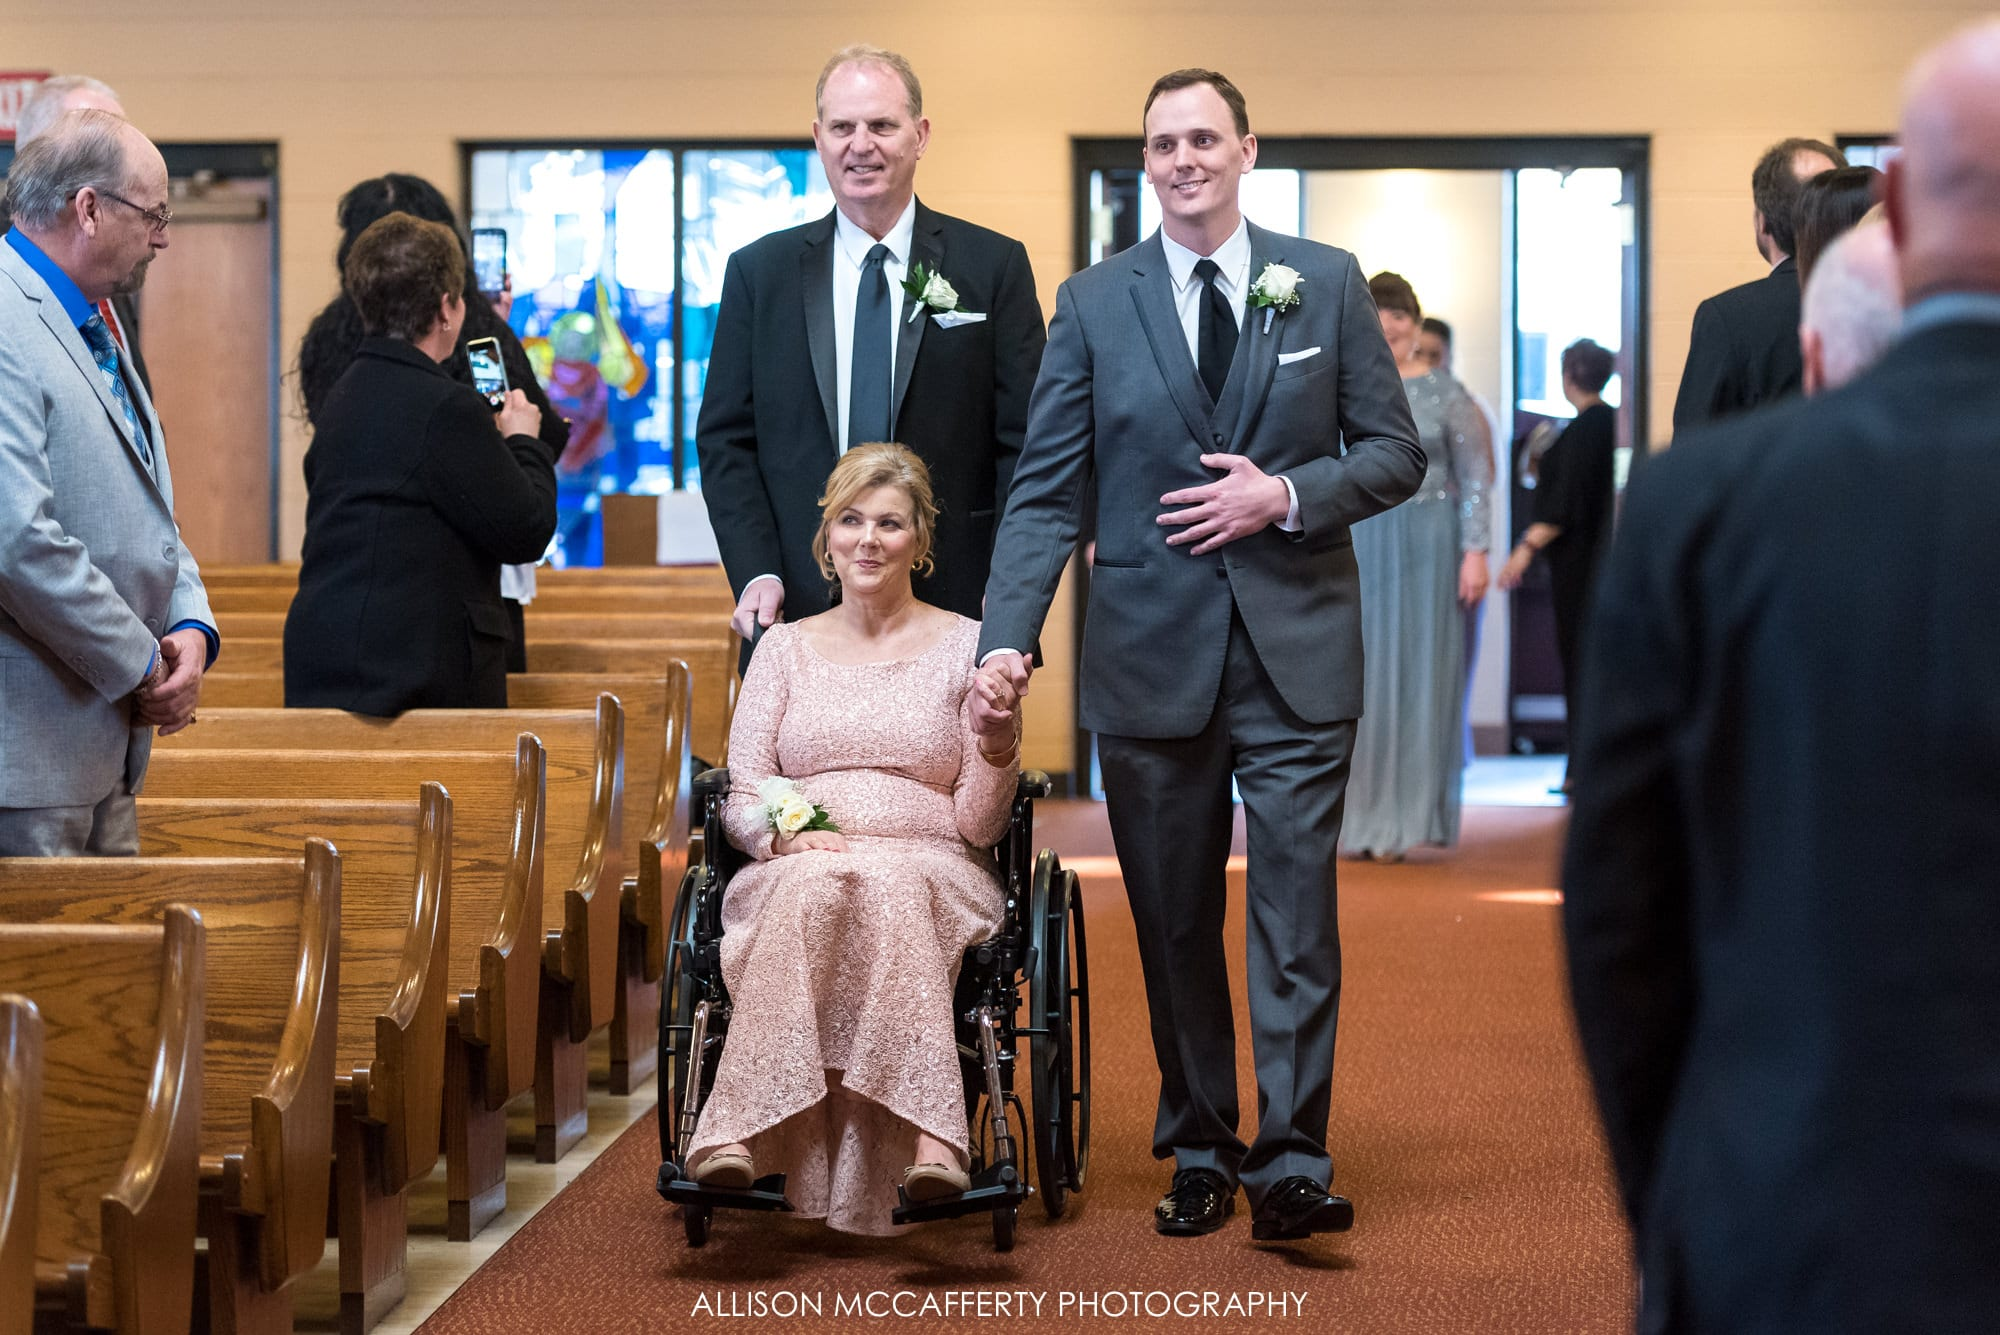 Groom and his Dad walking his Mom down the aisle for his wedding